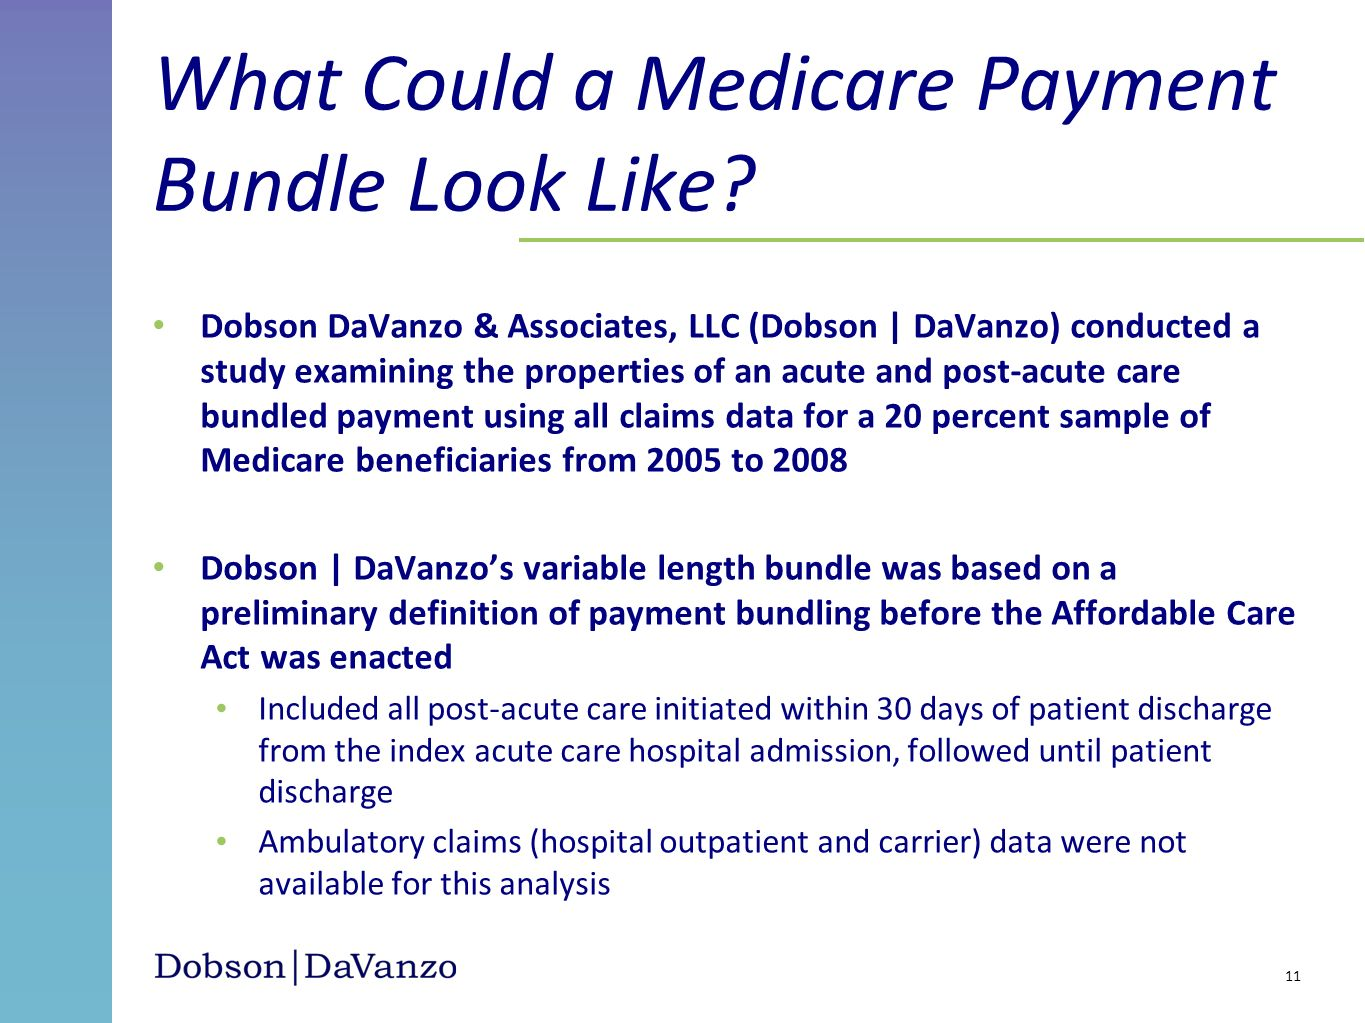 What Could a Medicare Payment Bundle Look Like